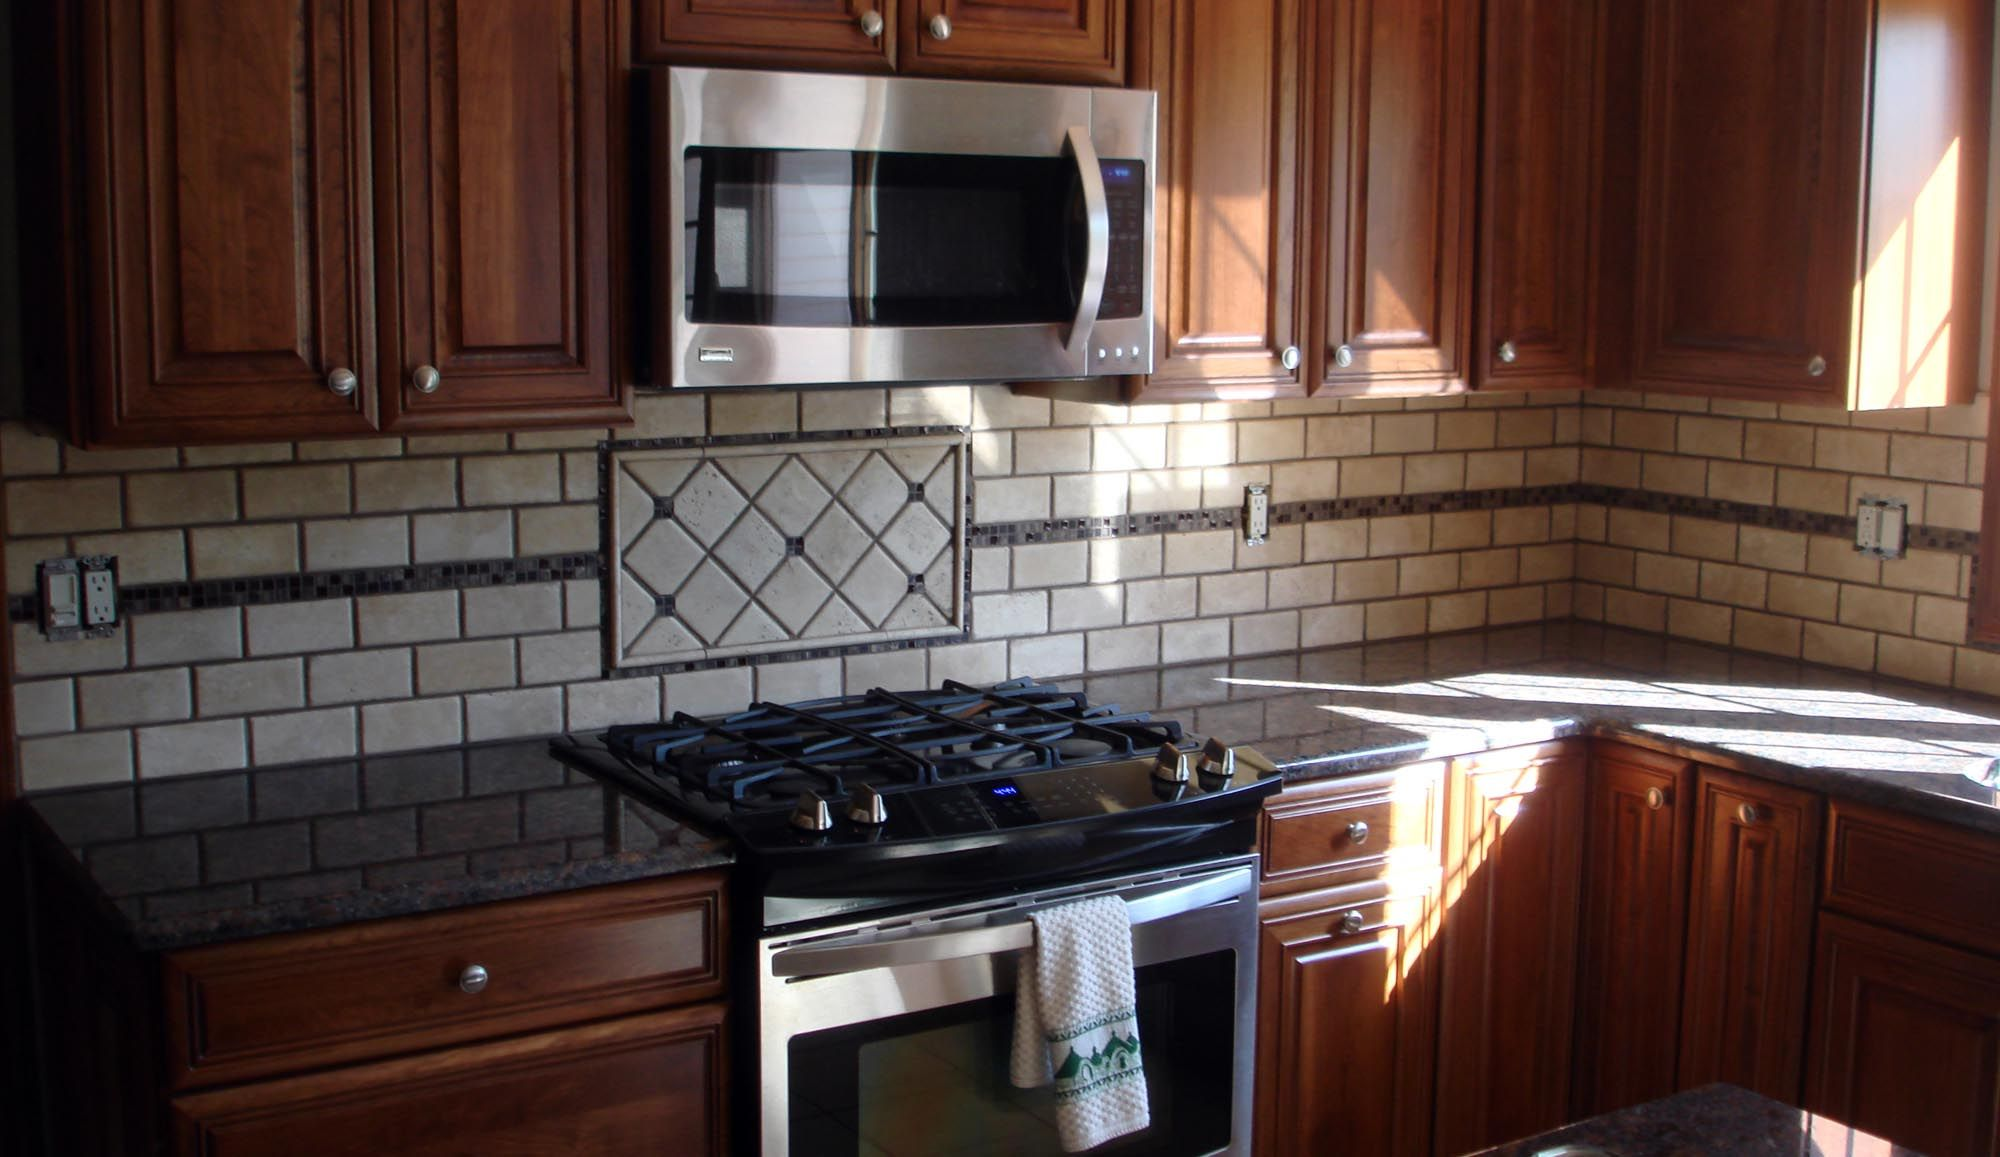 Mosaic Backsplash Design Ideas Part - 33: Tile Designs For Kitchen Backsplash Image - Yahoo Search Results | Kitchen  | Pinterest | Kitchen Backsplash, Tile Design And Yahoo Search